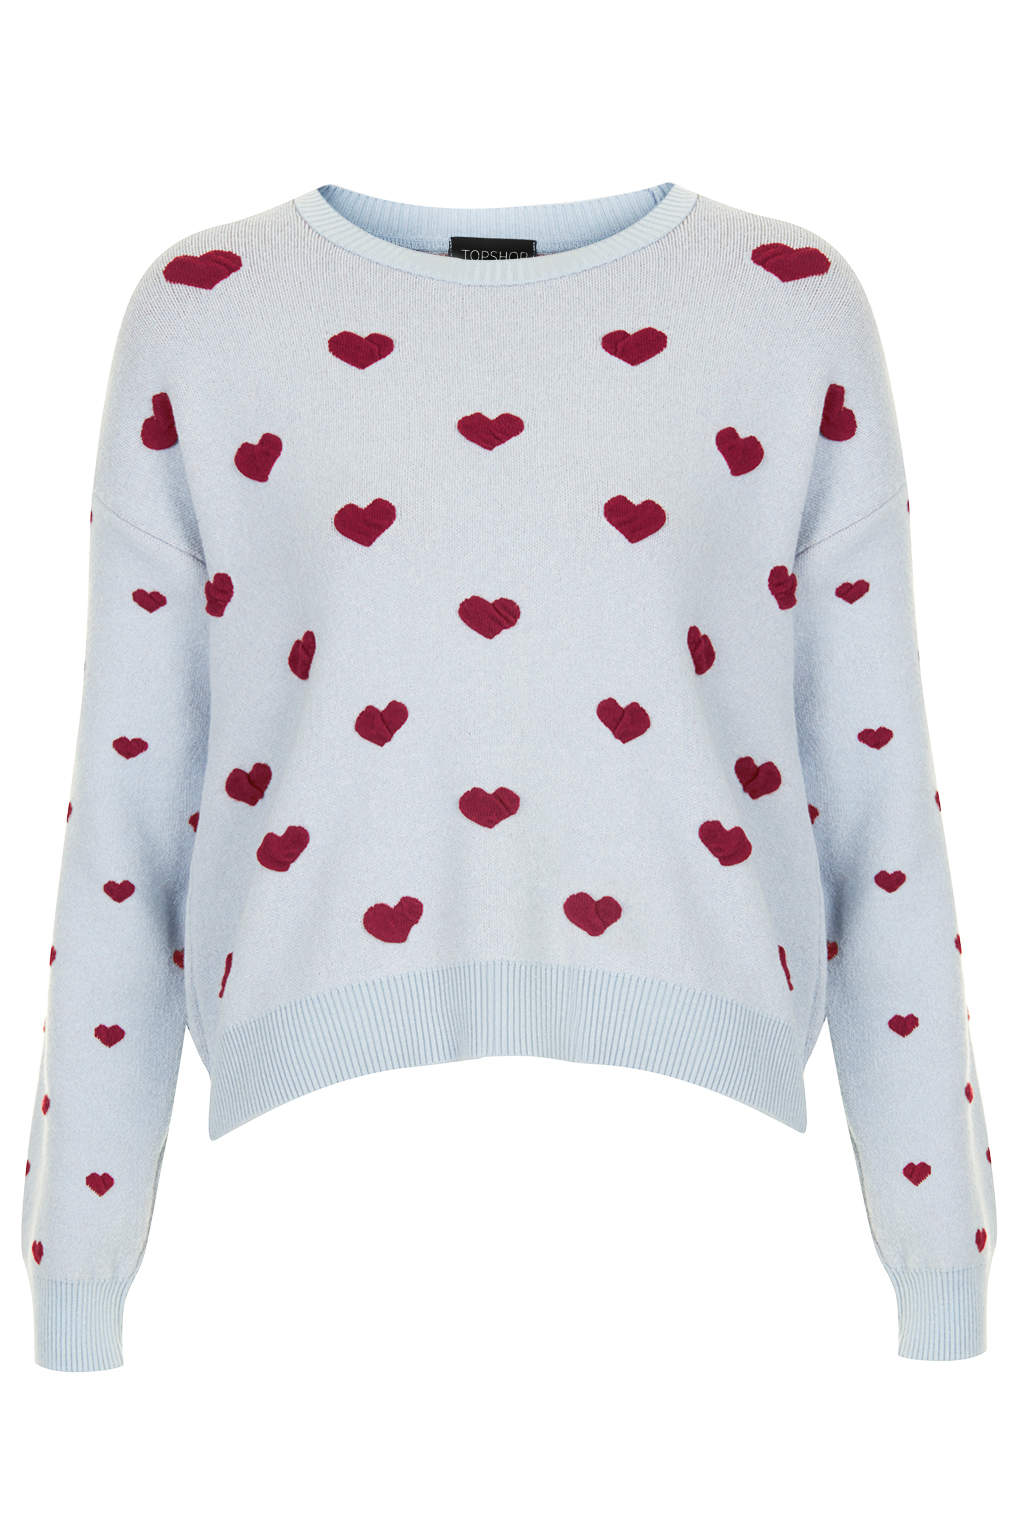 Top shop jumper